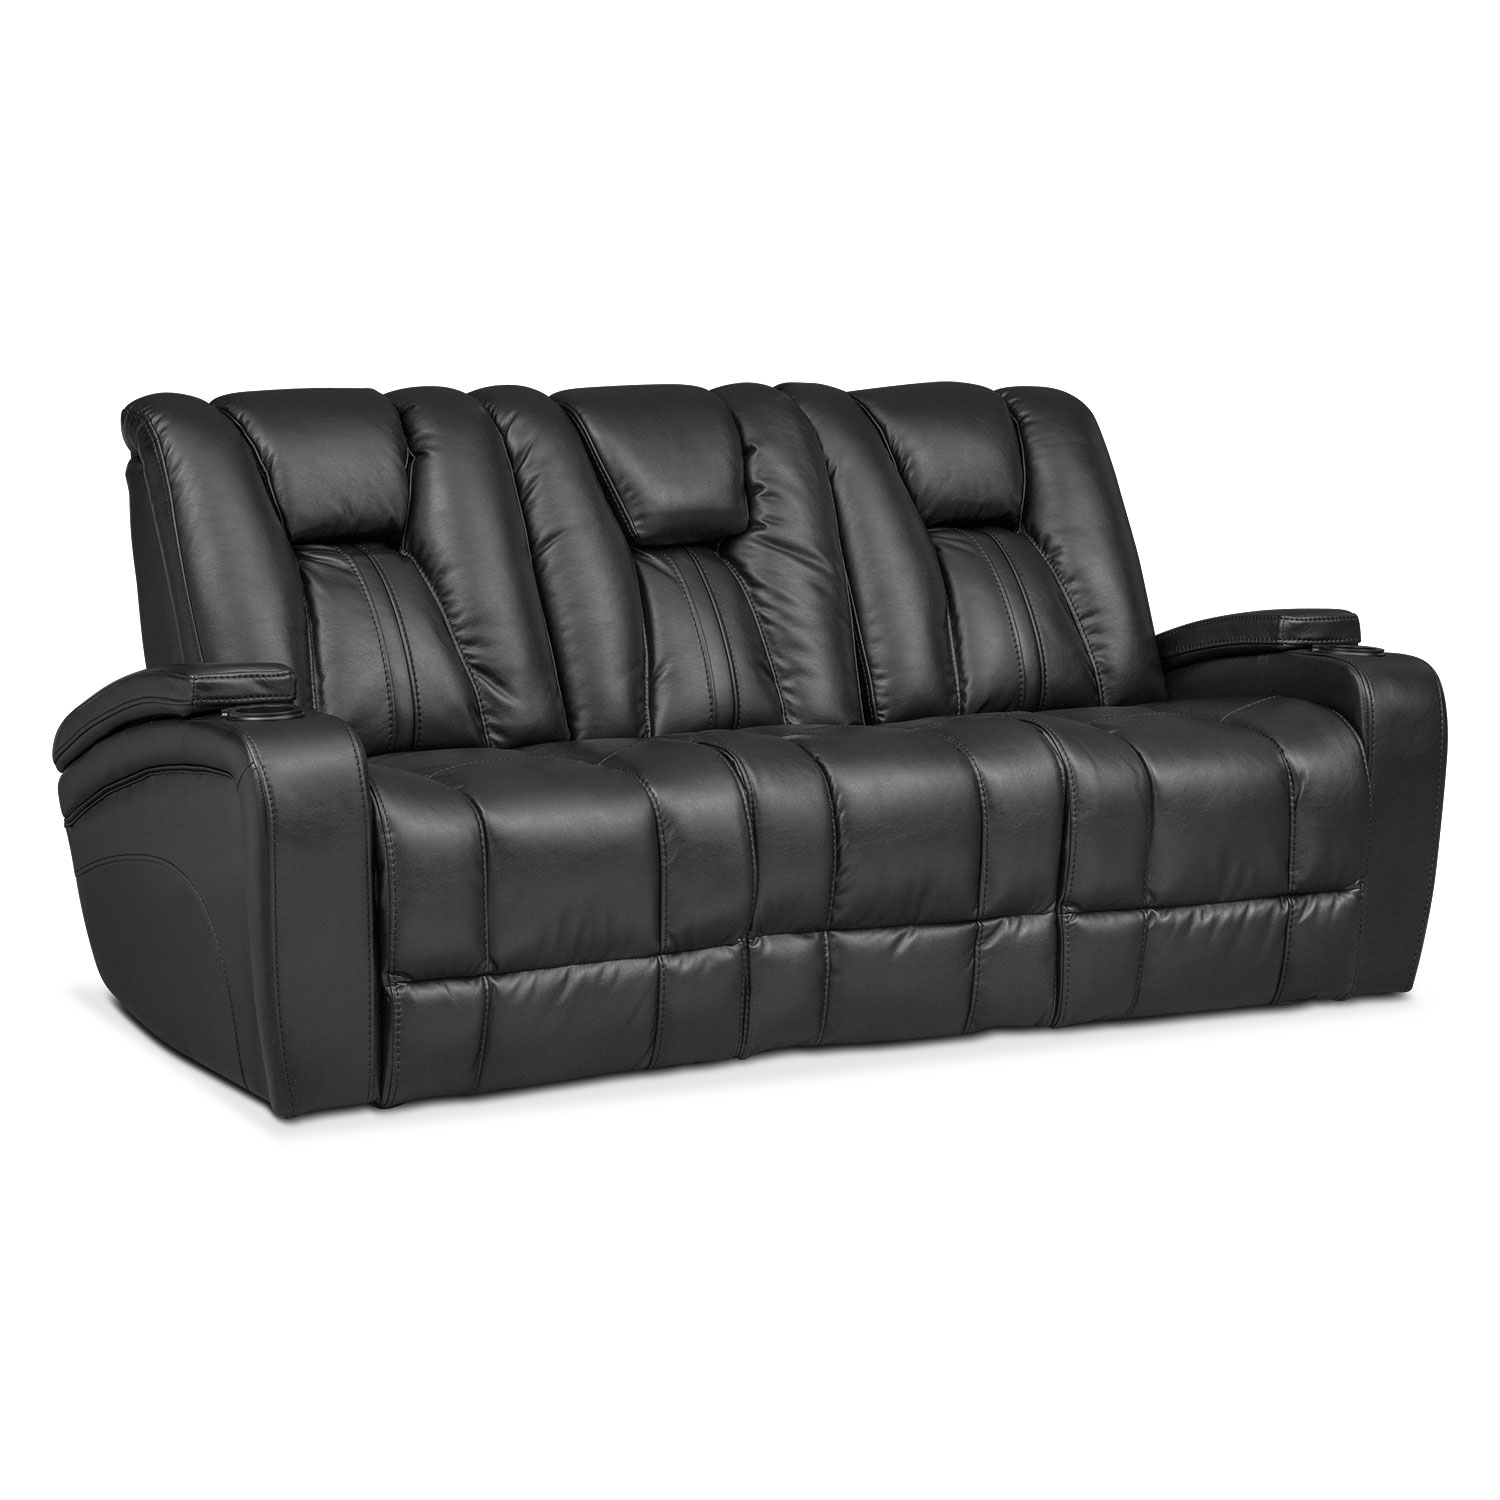 Sofas & Couches | Living Room Seating | Value City Furniture And For Scarborough Sectional Sofas (Image 10 of 10)